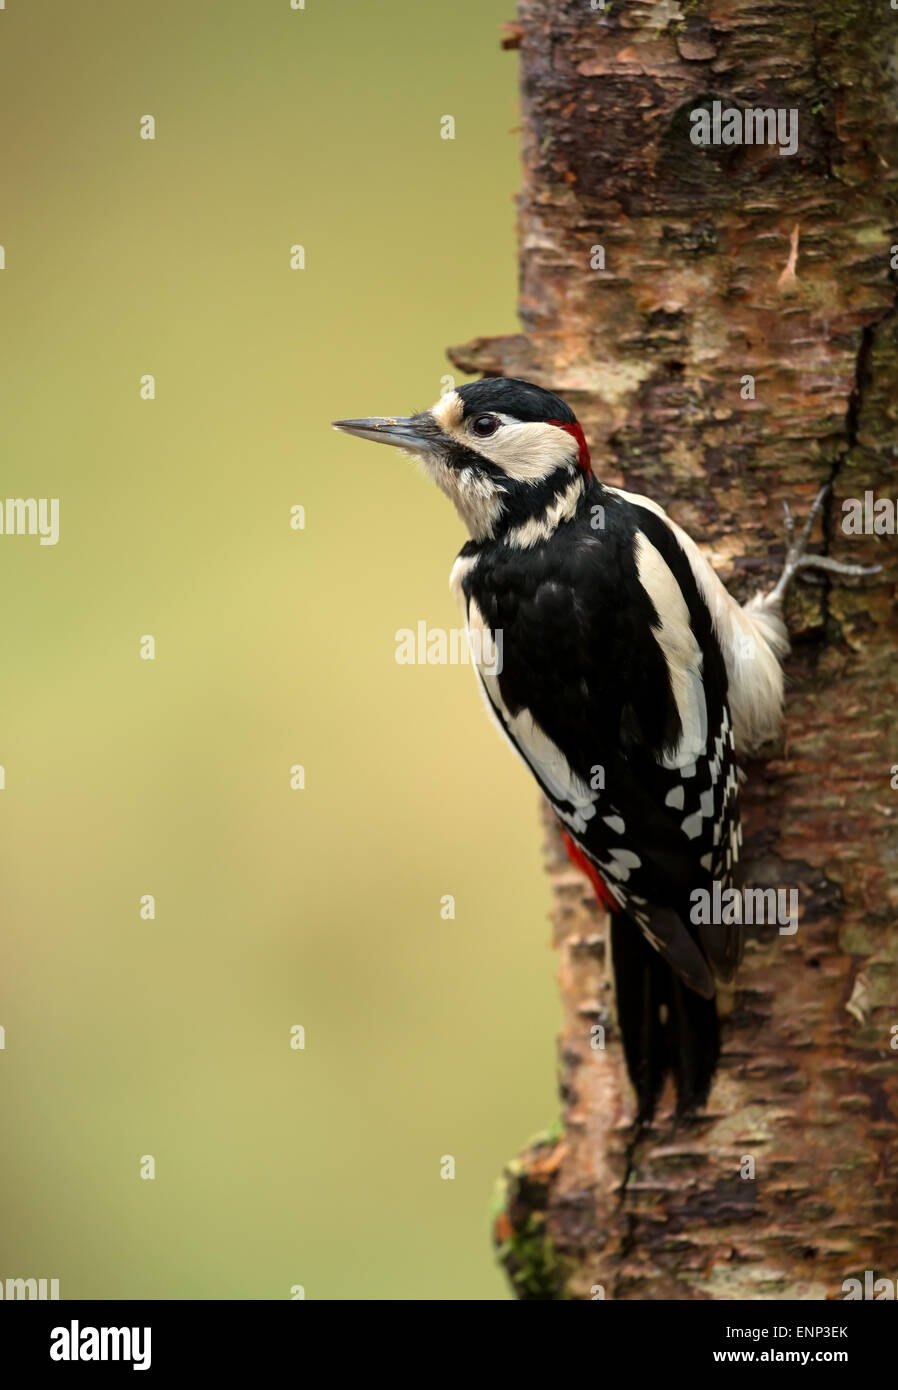 Male Great Spotted Woodpecker Dendrocopos major clinging to a tree trunk - Stock Image